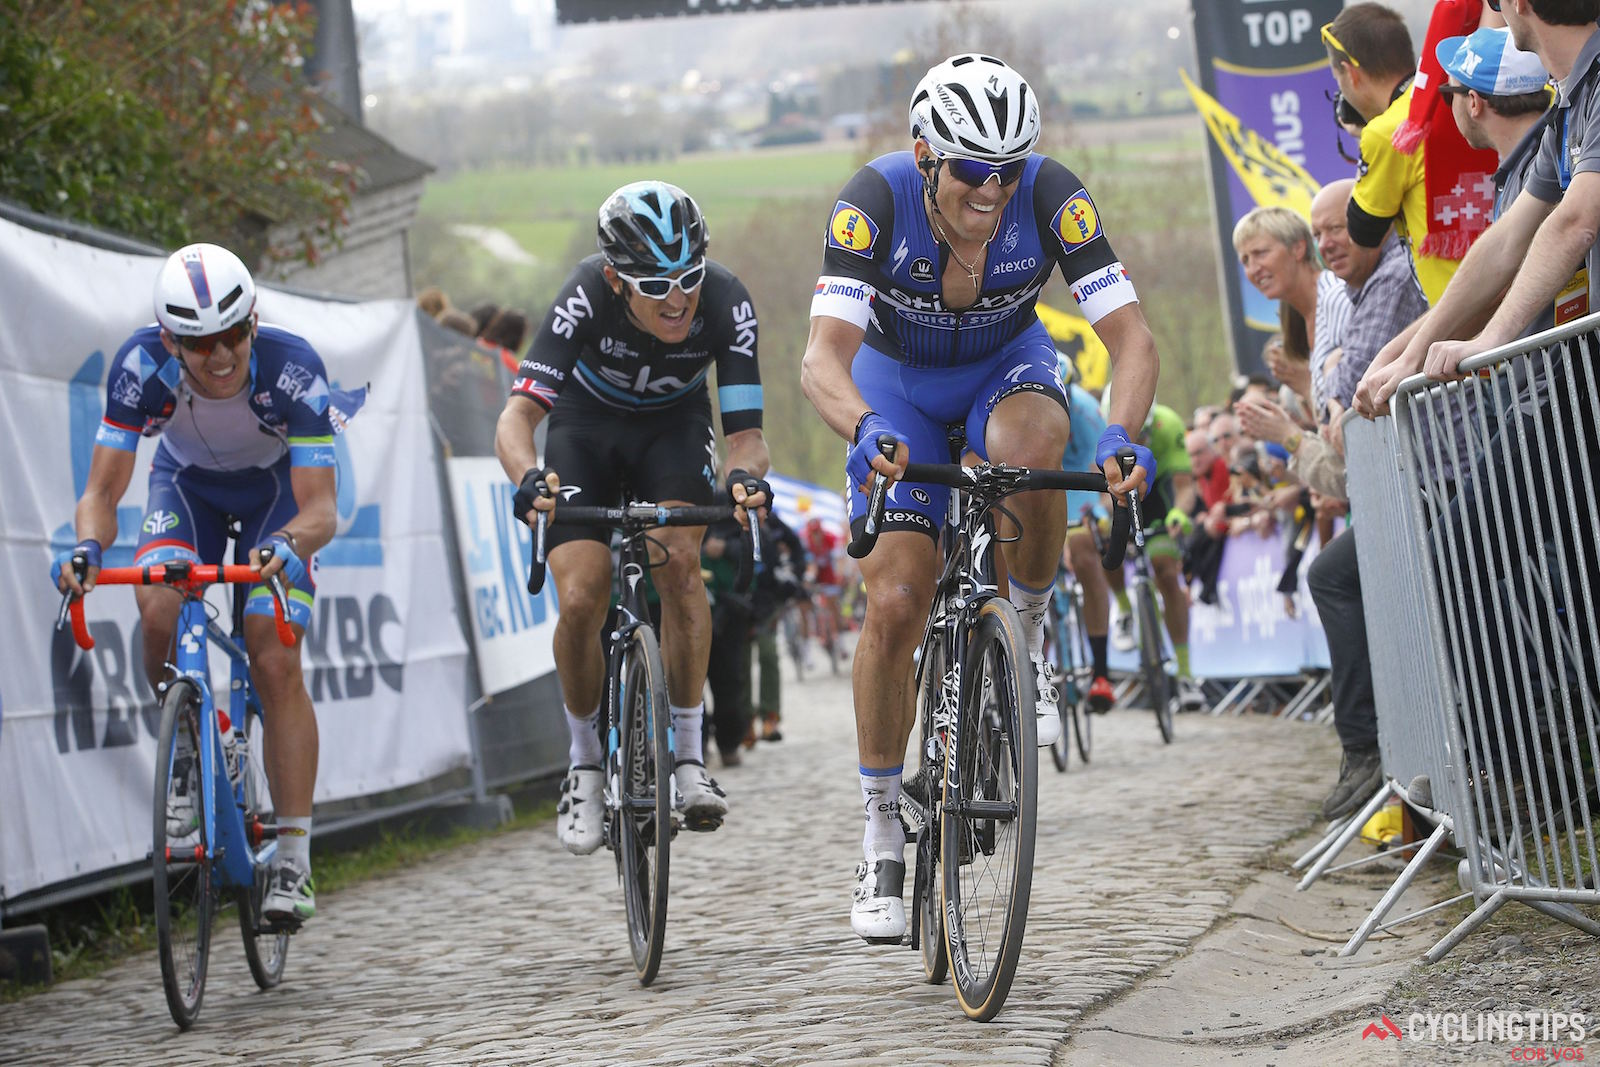 Zdenek Stybar (Etixx-QuickStep) and Geraint Thomas (Team Sky), during the 100th edition of the Tour of Flanders. Photo LB/RB//Cor Vos.